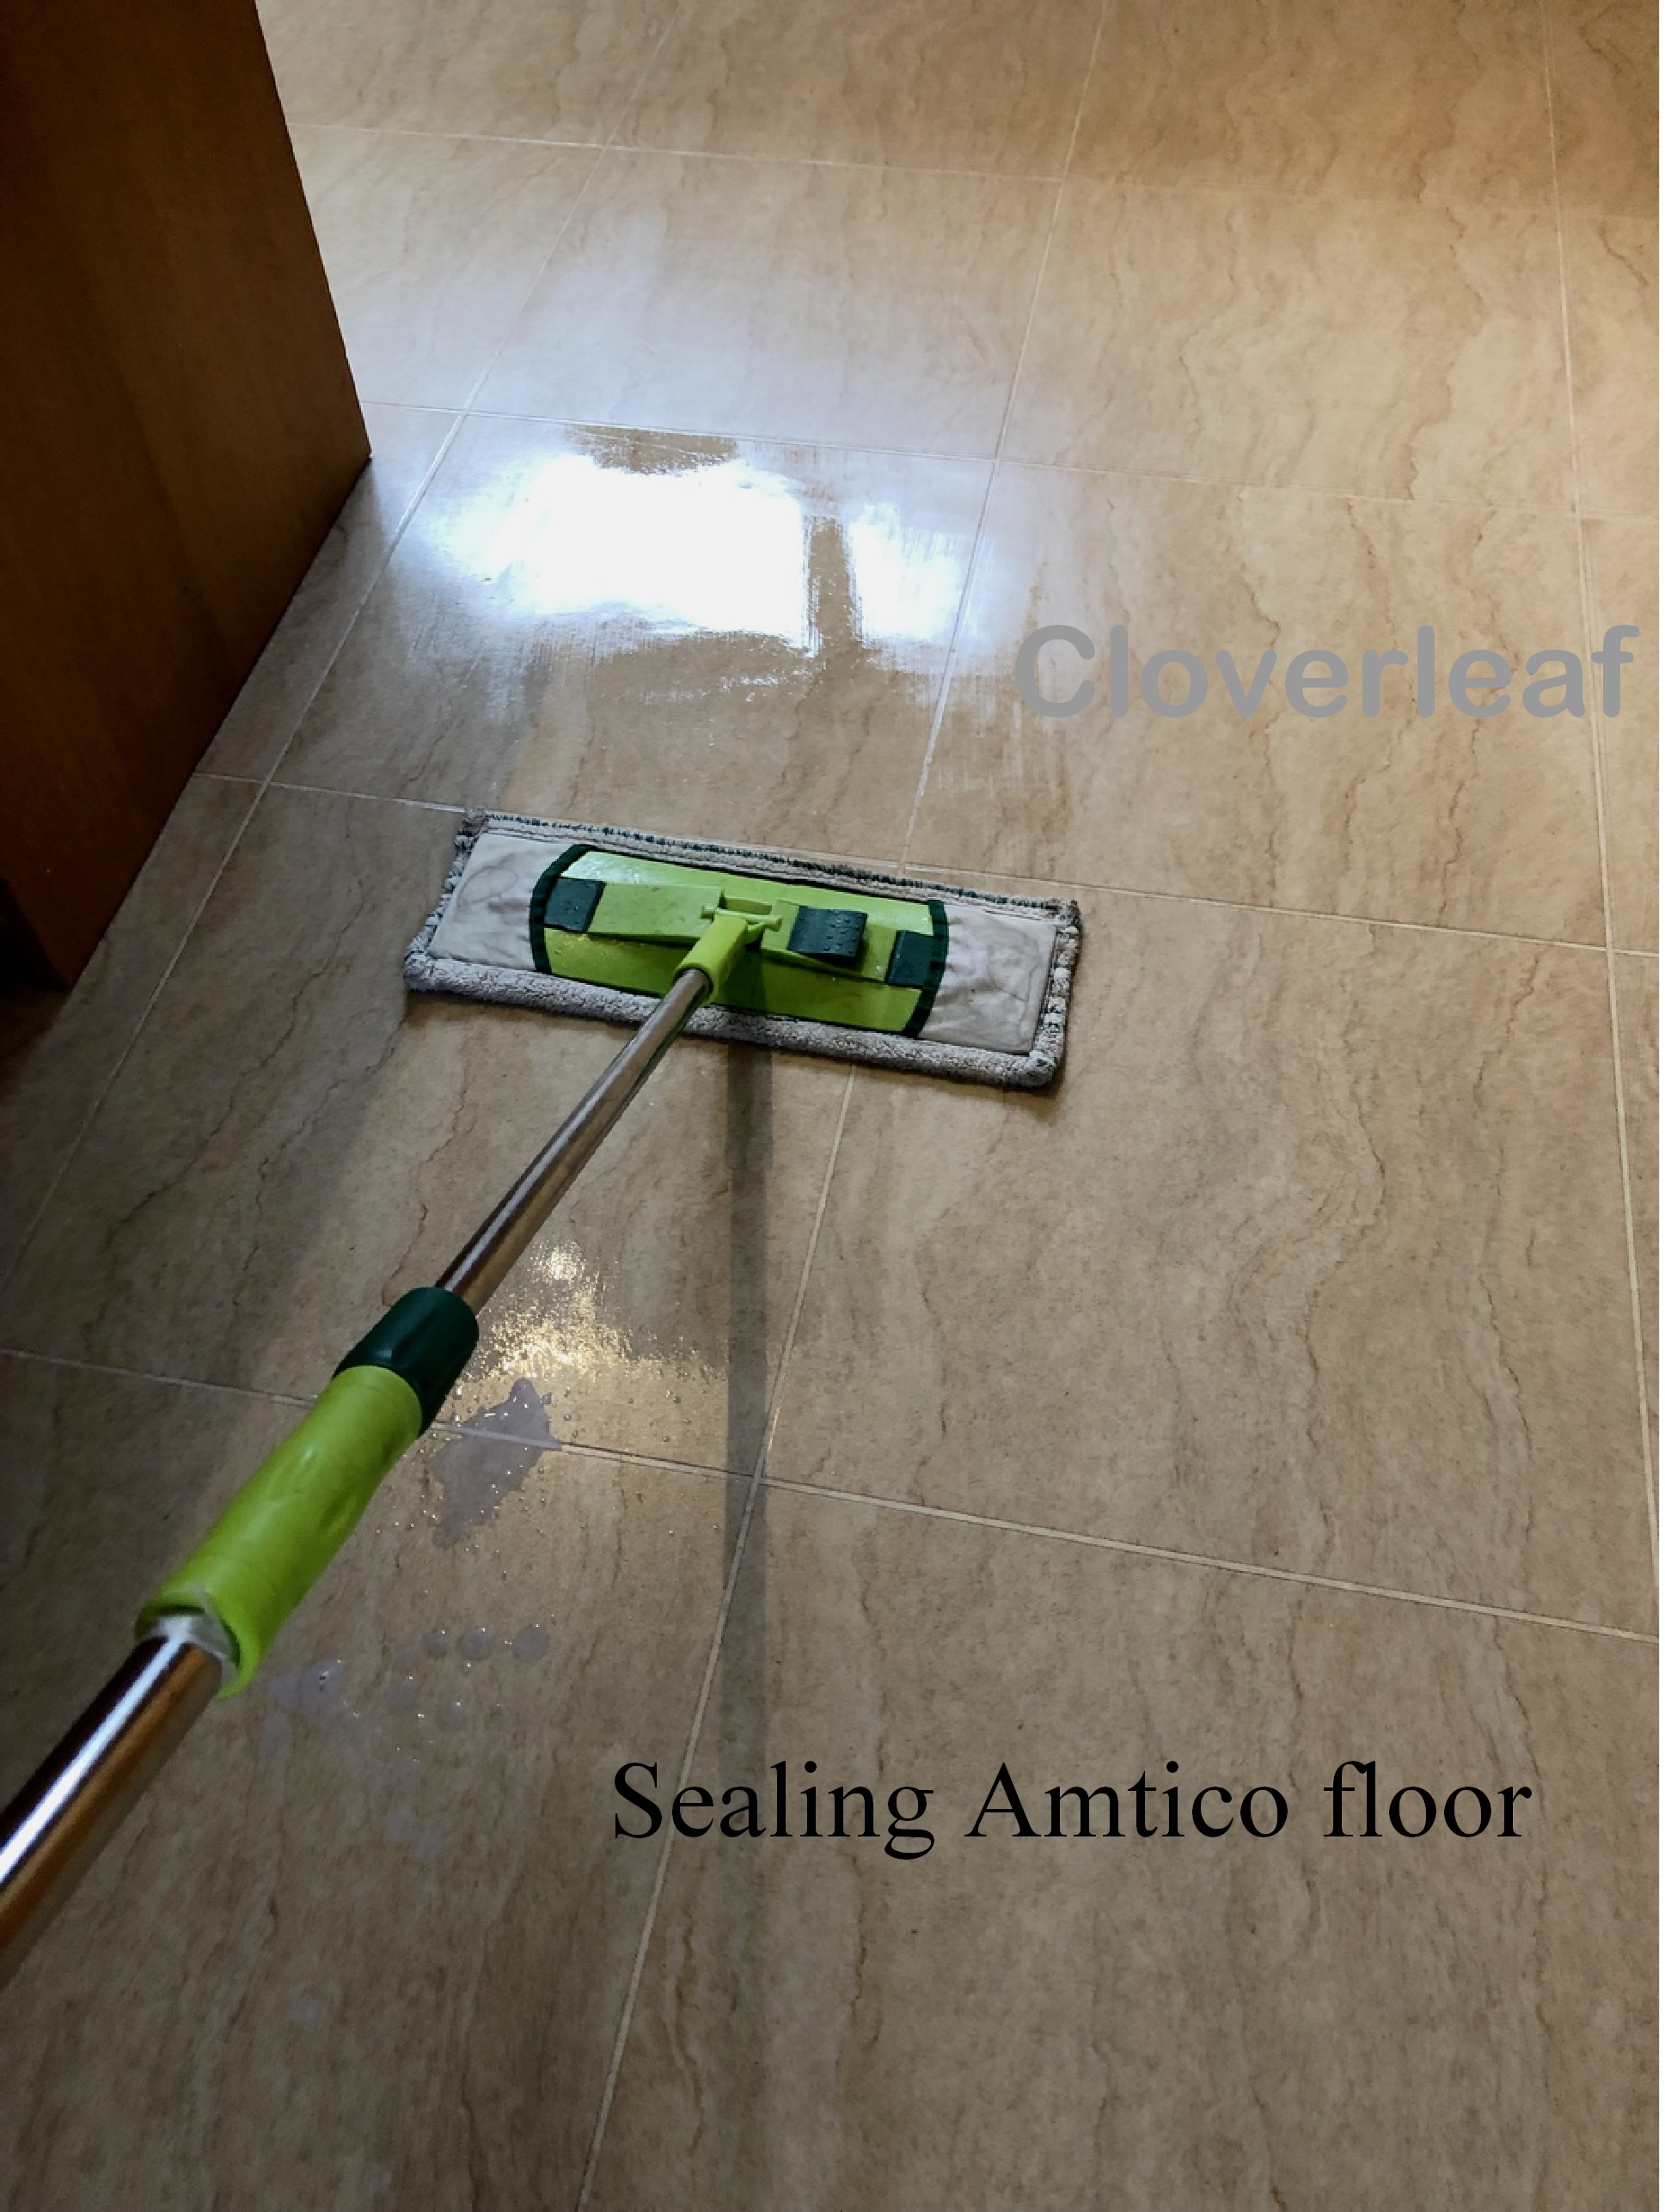 how to seal Amtico floor